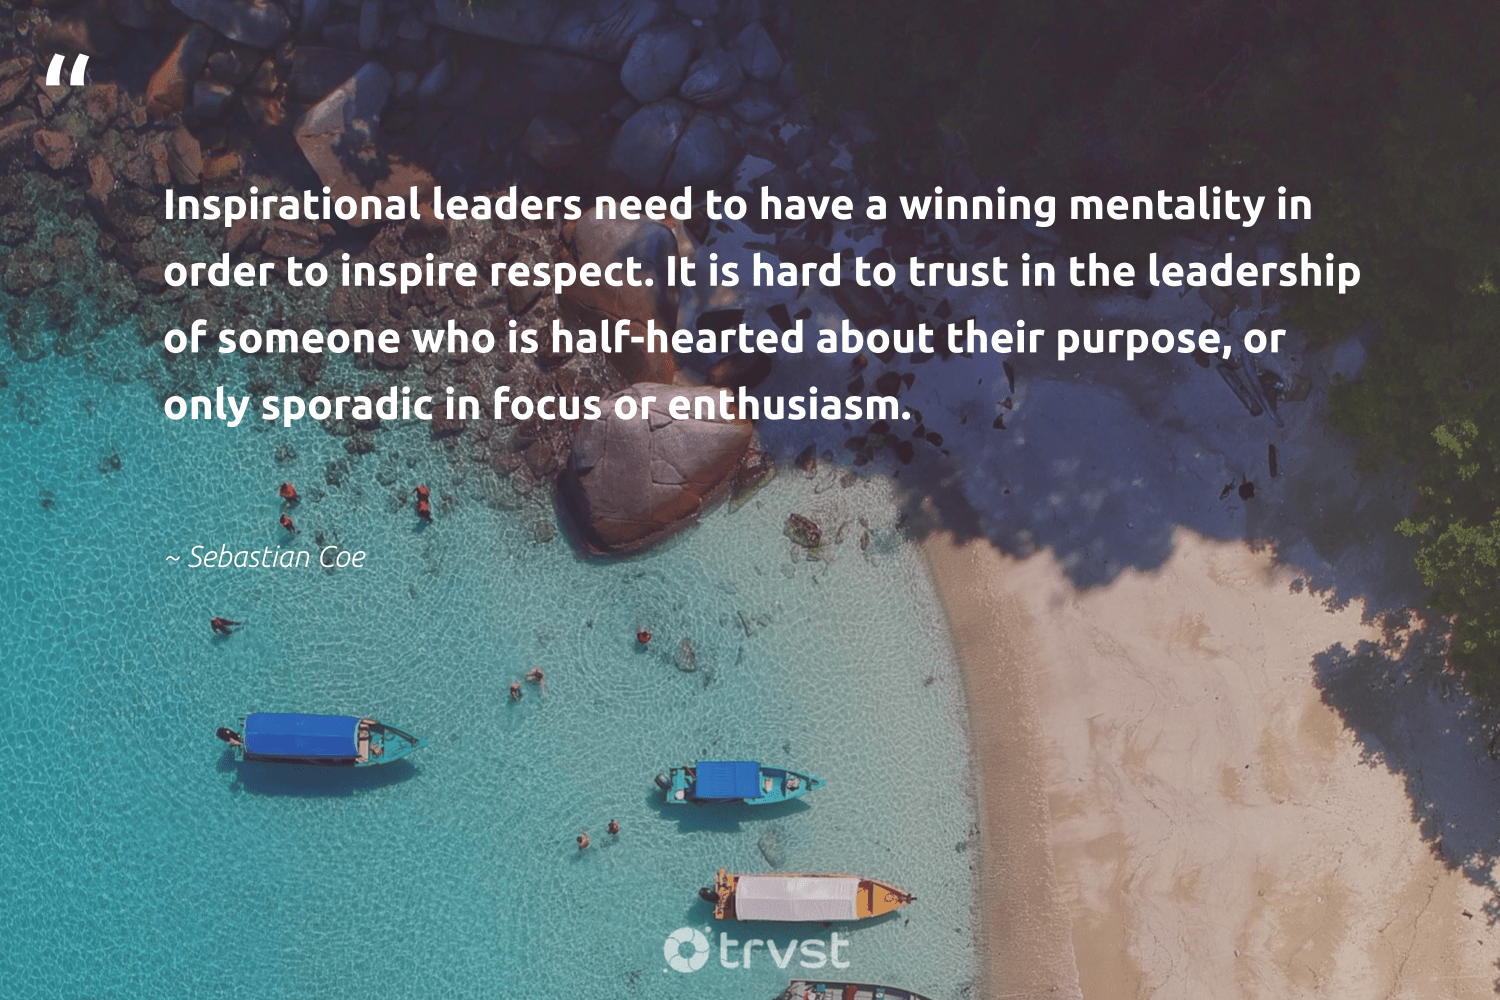 """Inspirational leaders need to have a winning mentality in order to inspire respect. It is hard to trust in the leadership of someone who is half-hearted about their purpose, or only sporadic in focus or enthusiasm.""  - Sebastian Coe #trvst #quotes #purpose #leadership #focus #purposedriven #softskills #mindset #bethechange #findpurpose #nevergiveup #begreat"